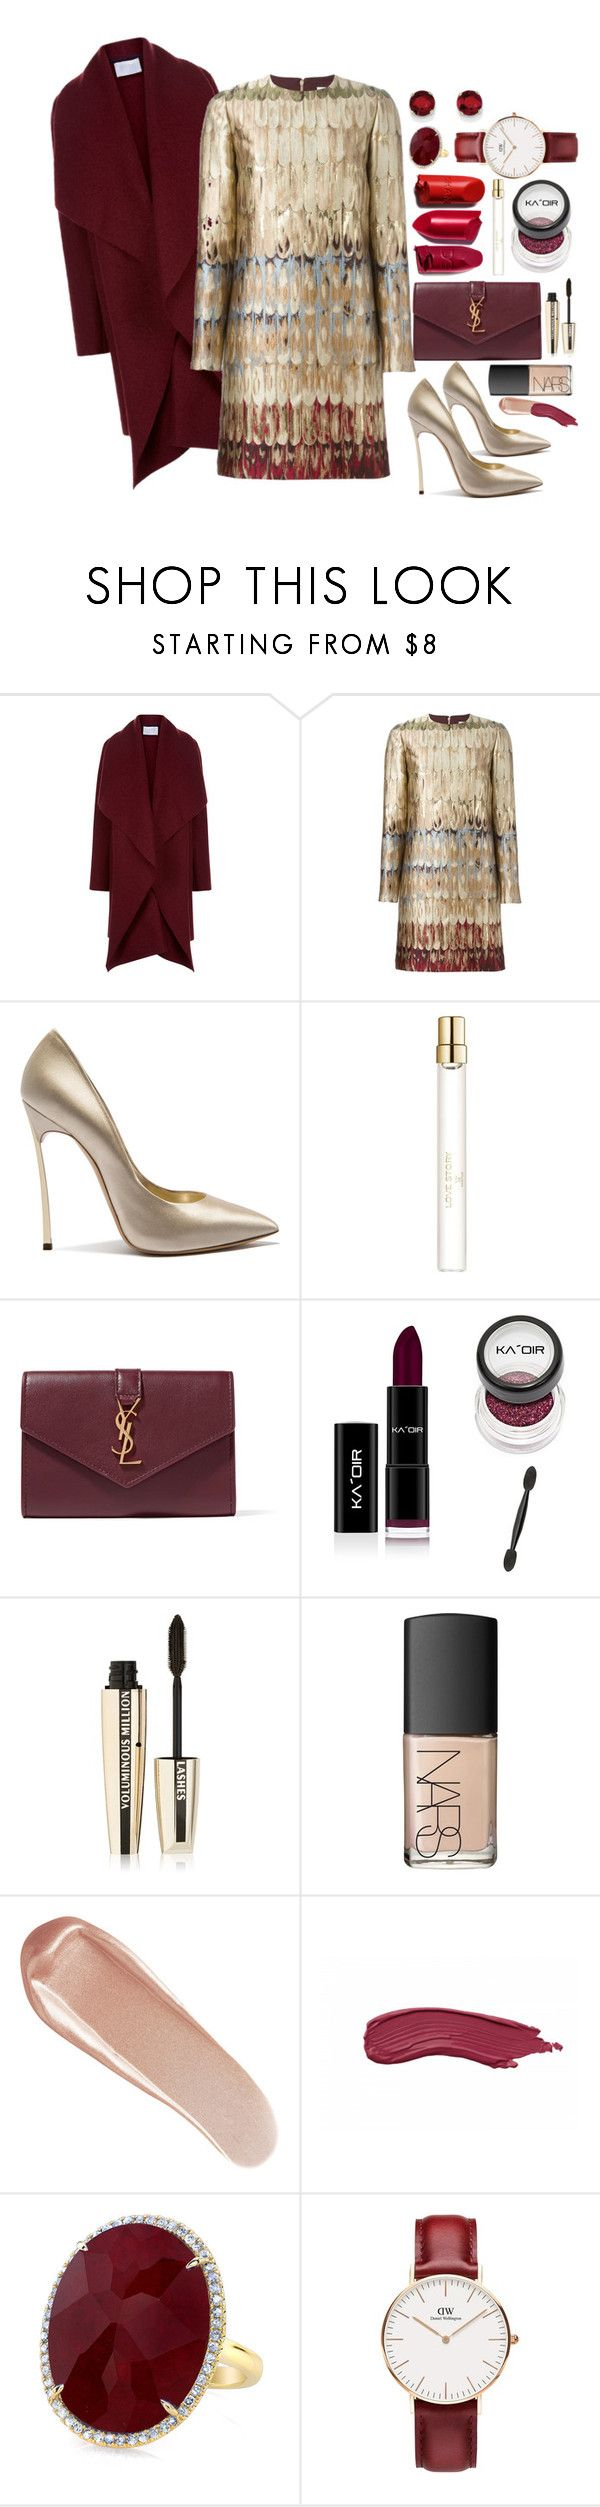 """""""Untitled #419"""" by mayer-fruzsina ❤ liked on Polyvore featuring Harris Wharf London, Valentino, Casadei, Chloé, Yves Saint Laurent, L'Oréal Paris, NARS Cosmetics, Anne Sisteron, Daniel Wellington and Kevin Jewelers"""